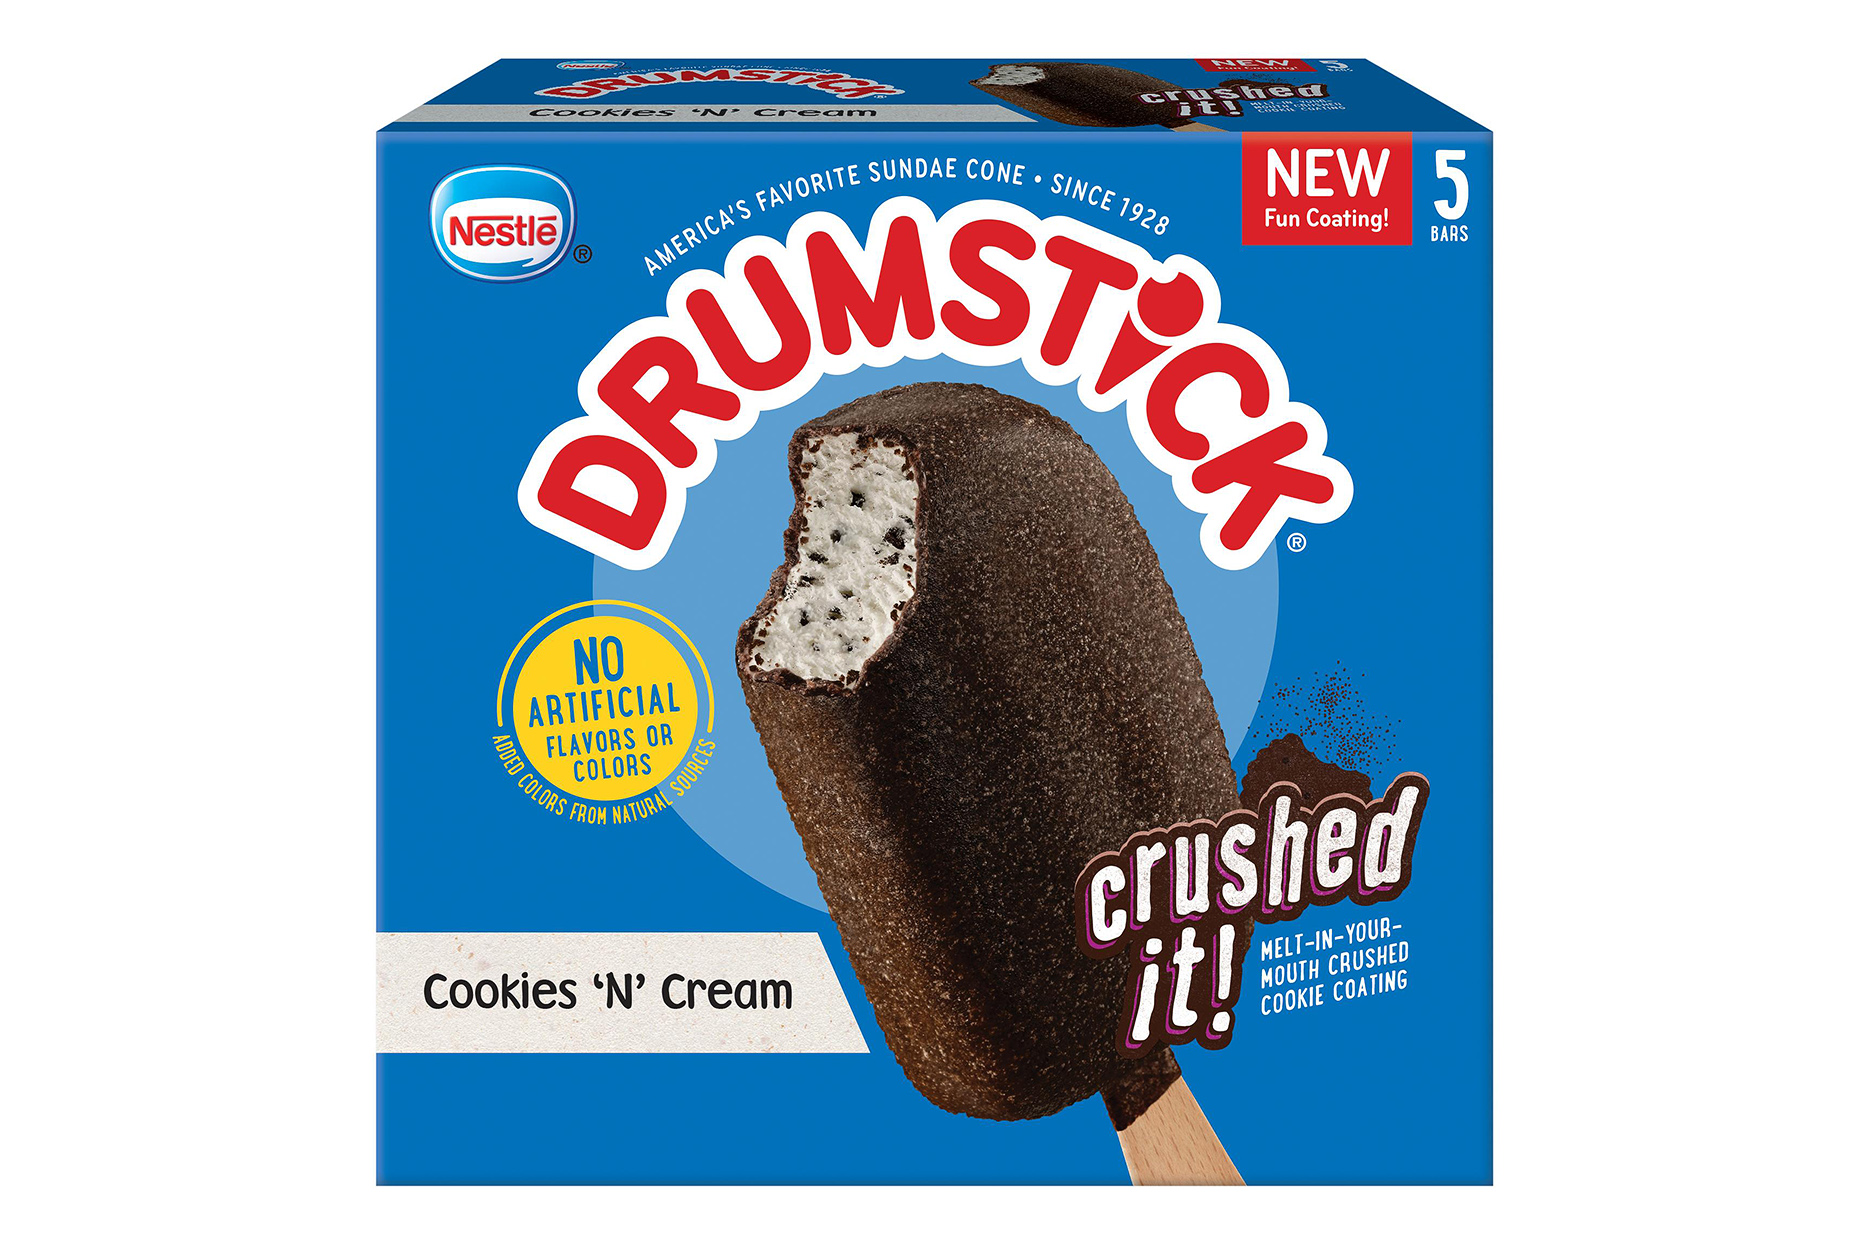 drumstick cookies 'n' cream